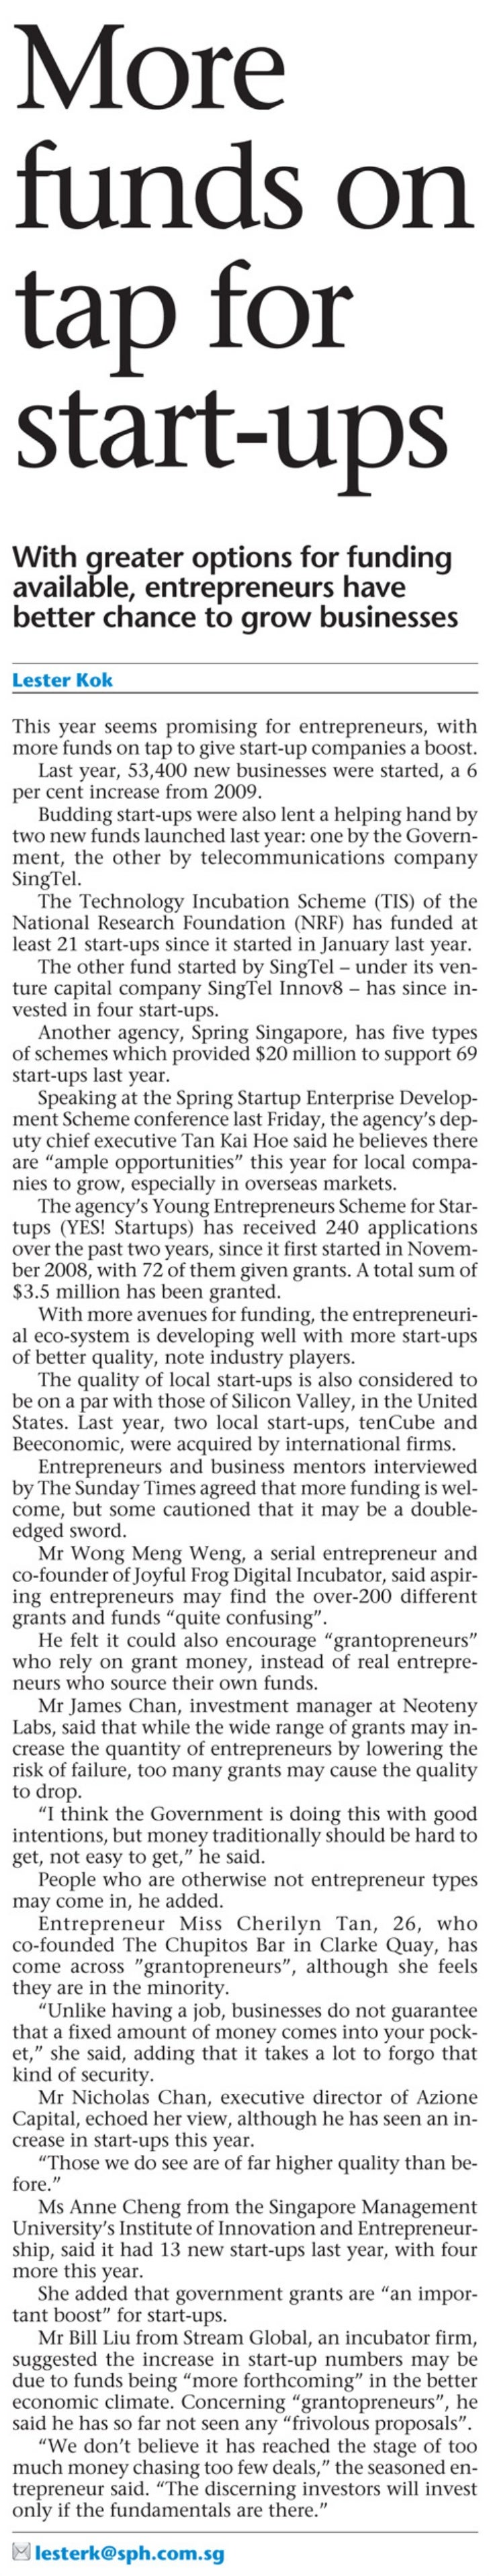 More funds on tap for start-ups